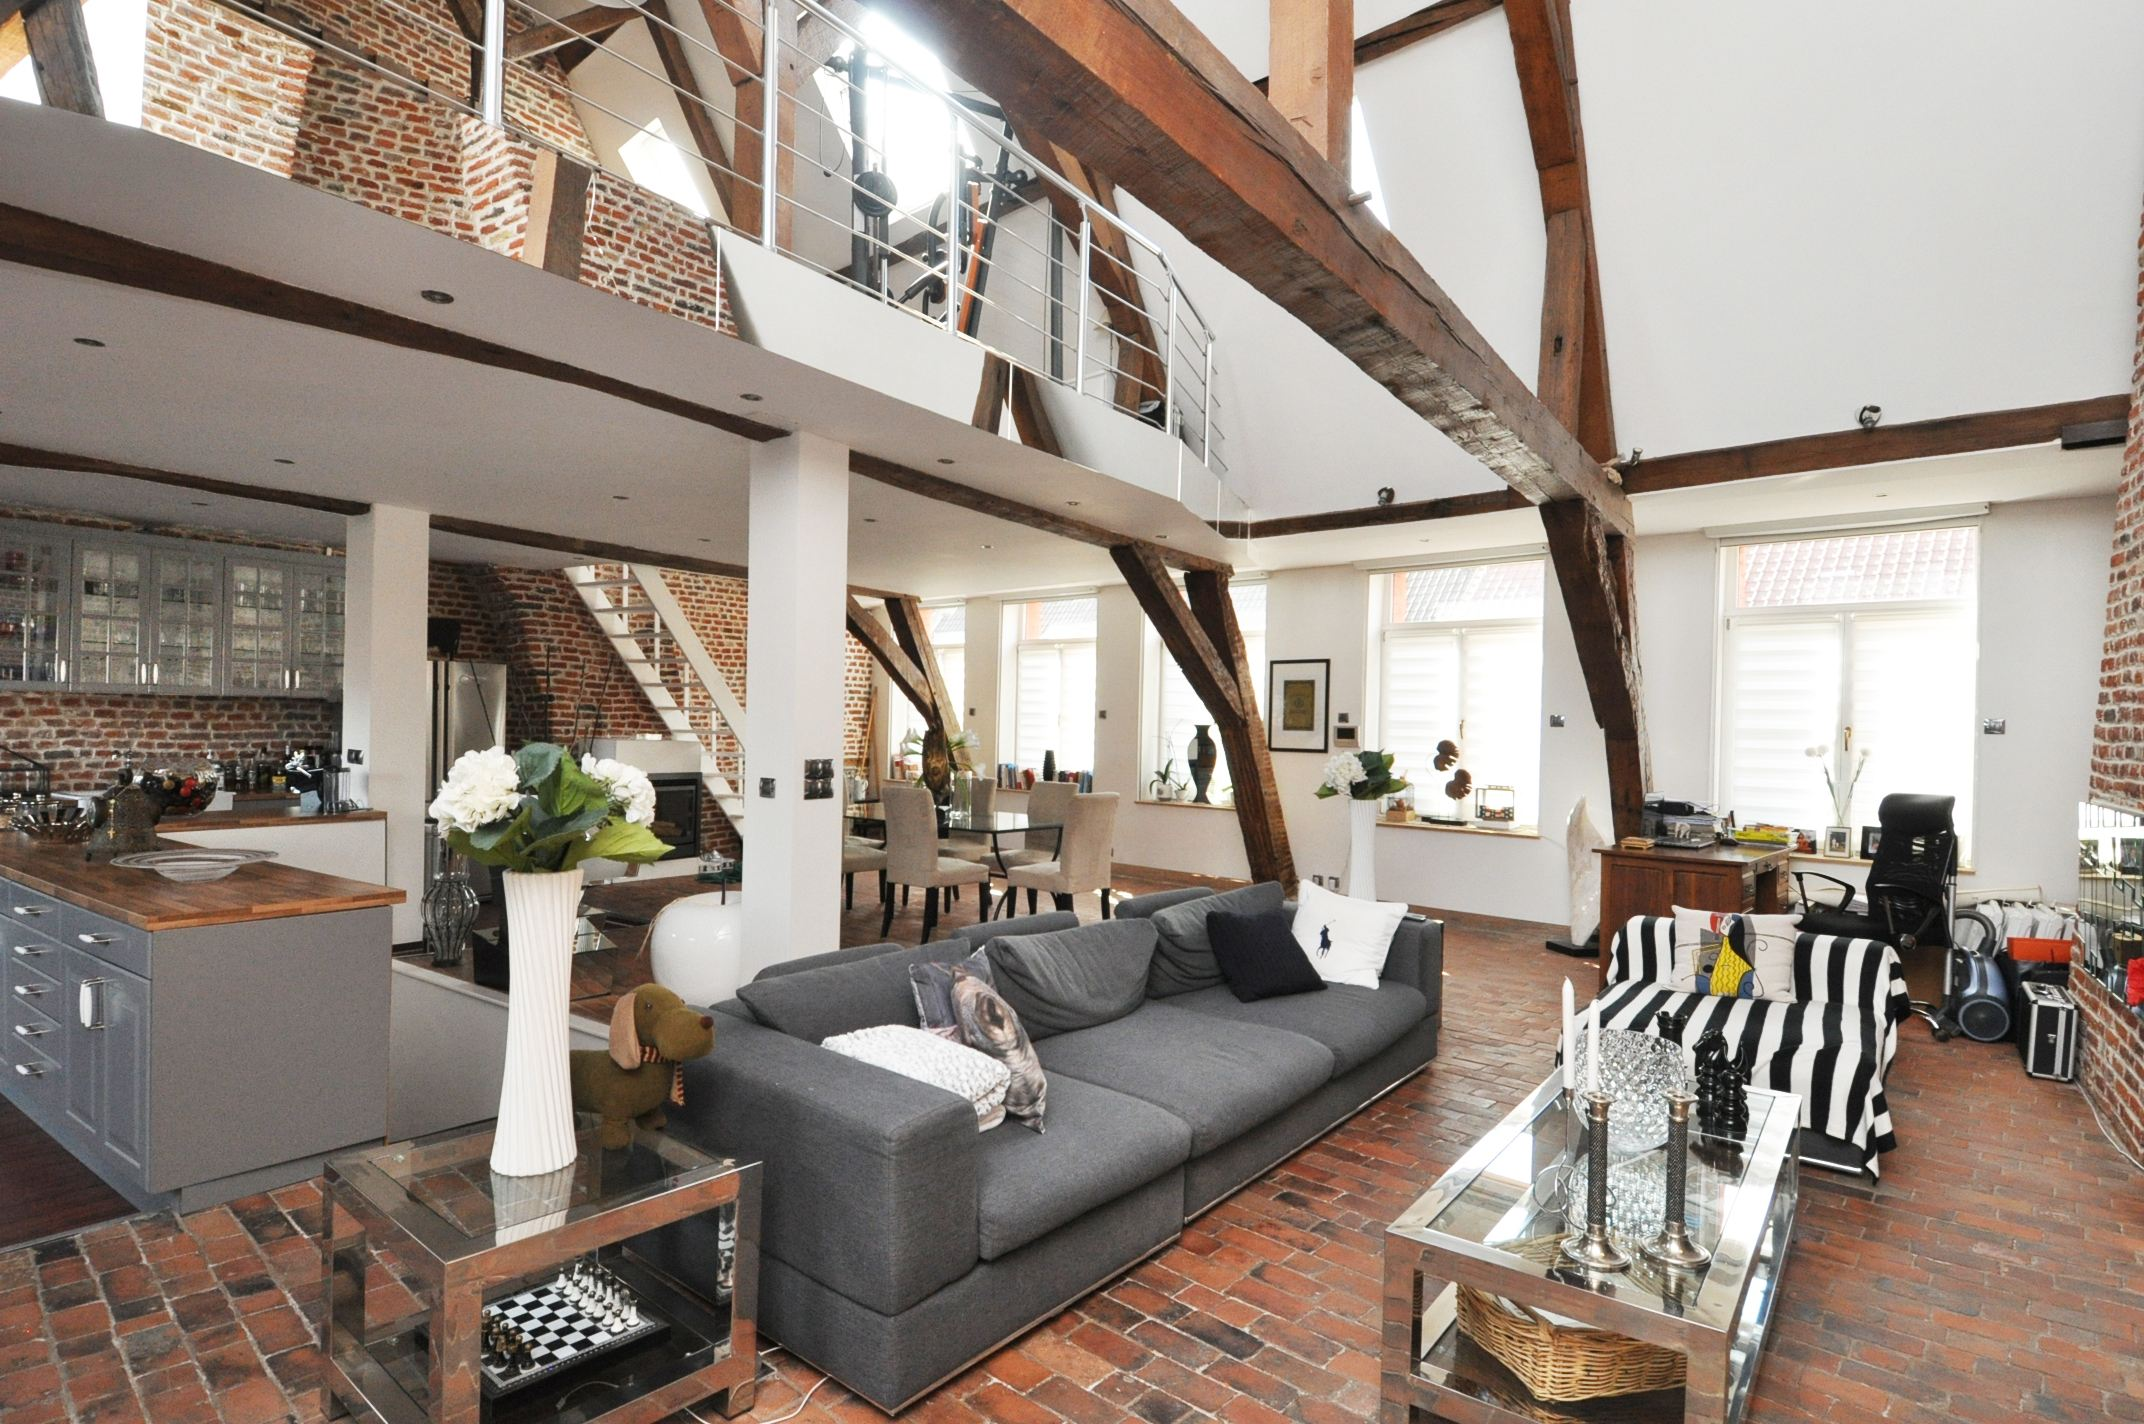 rentals property at DOUAI CITY CENTRE, 135sqm high-standard loft with 1 bedroom.